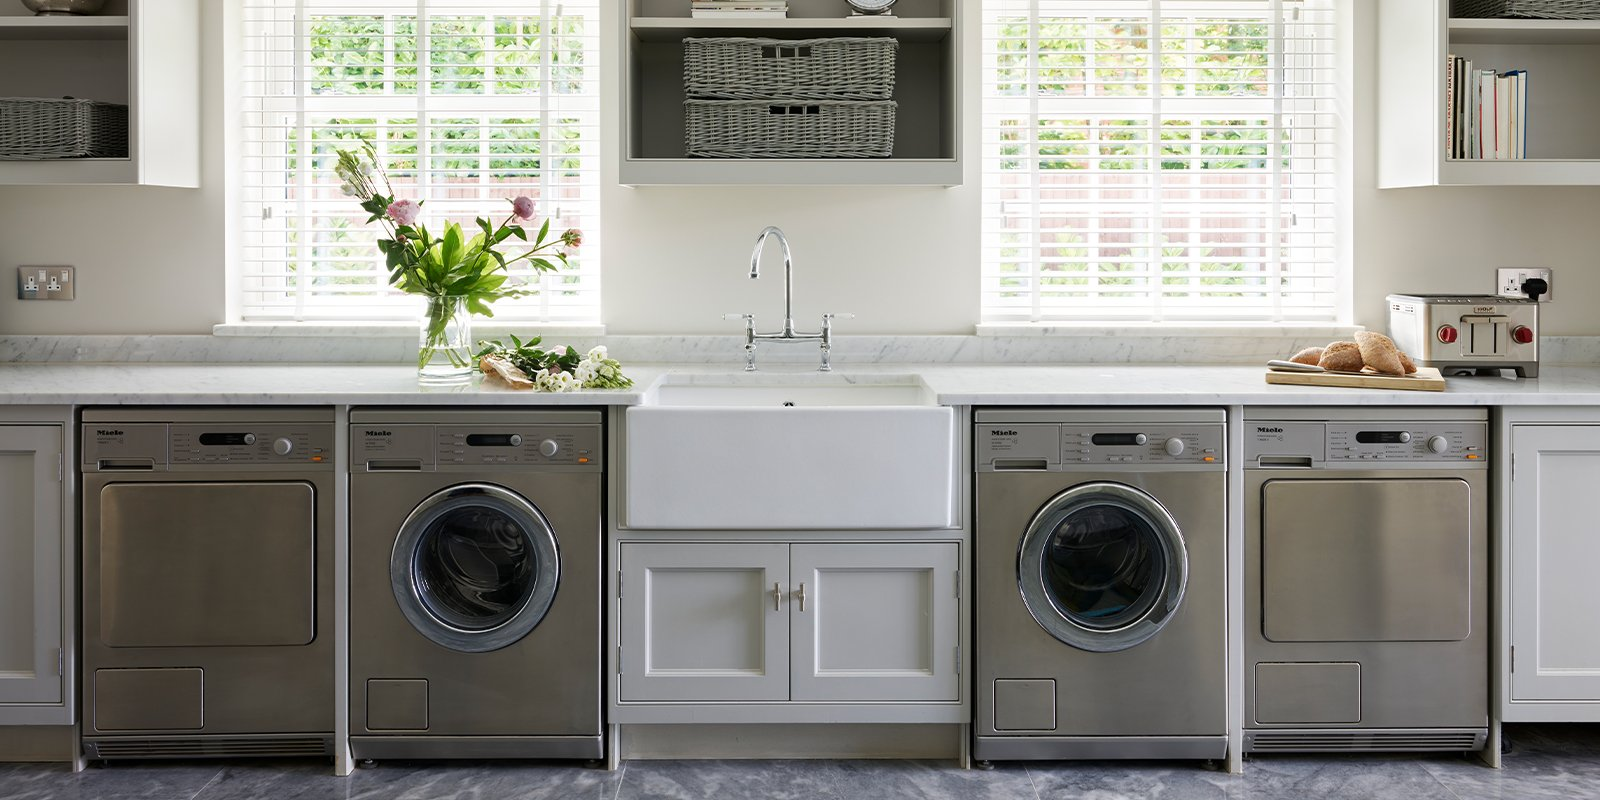 utility room with many appliances